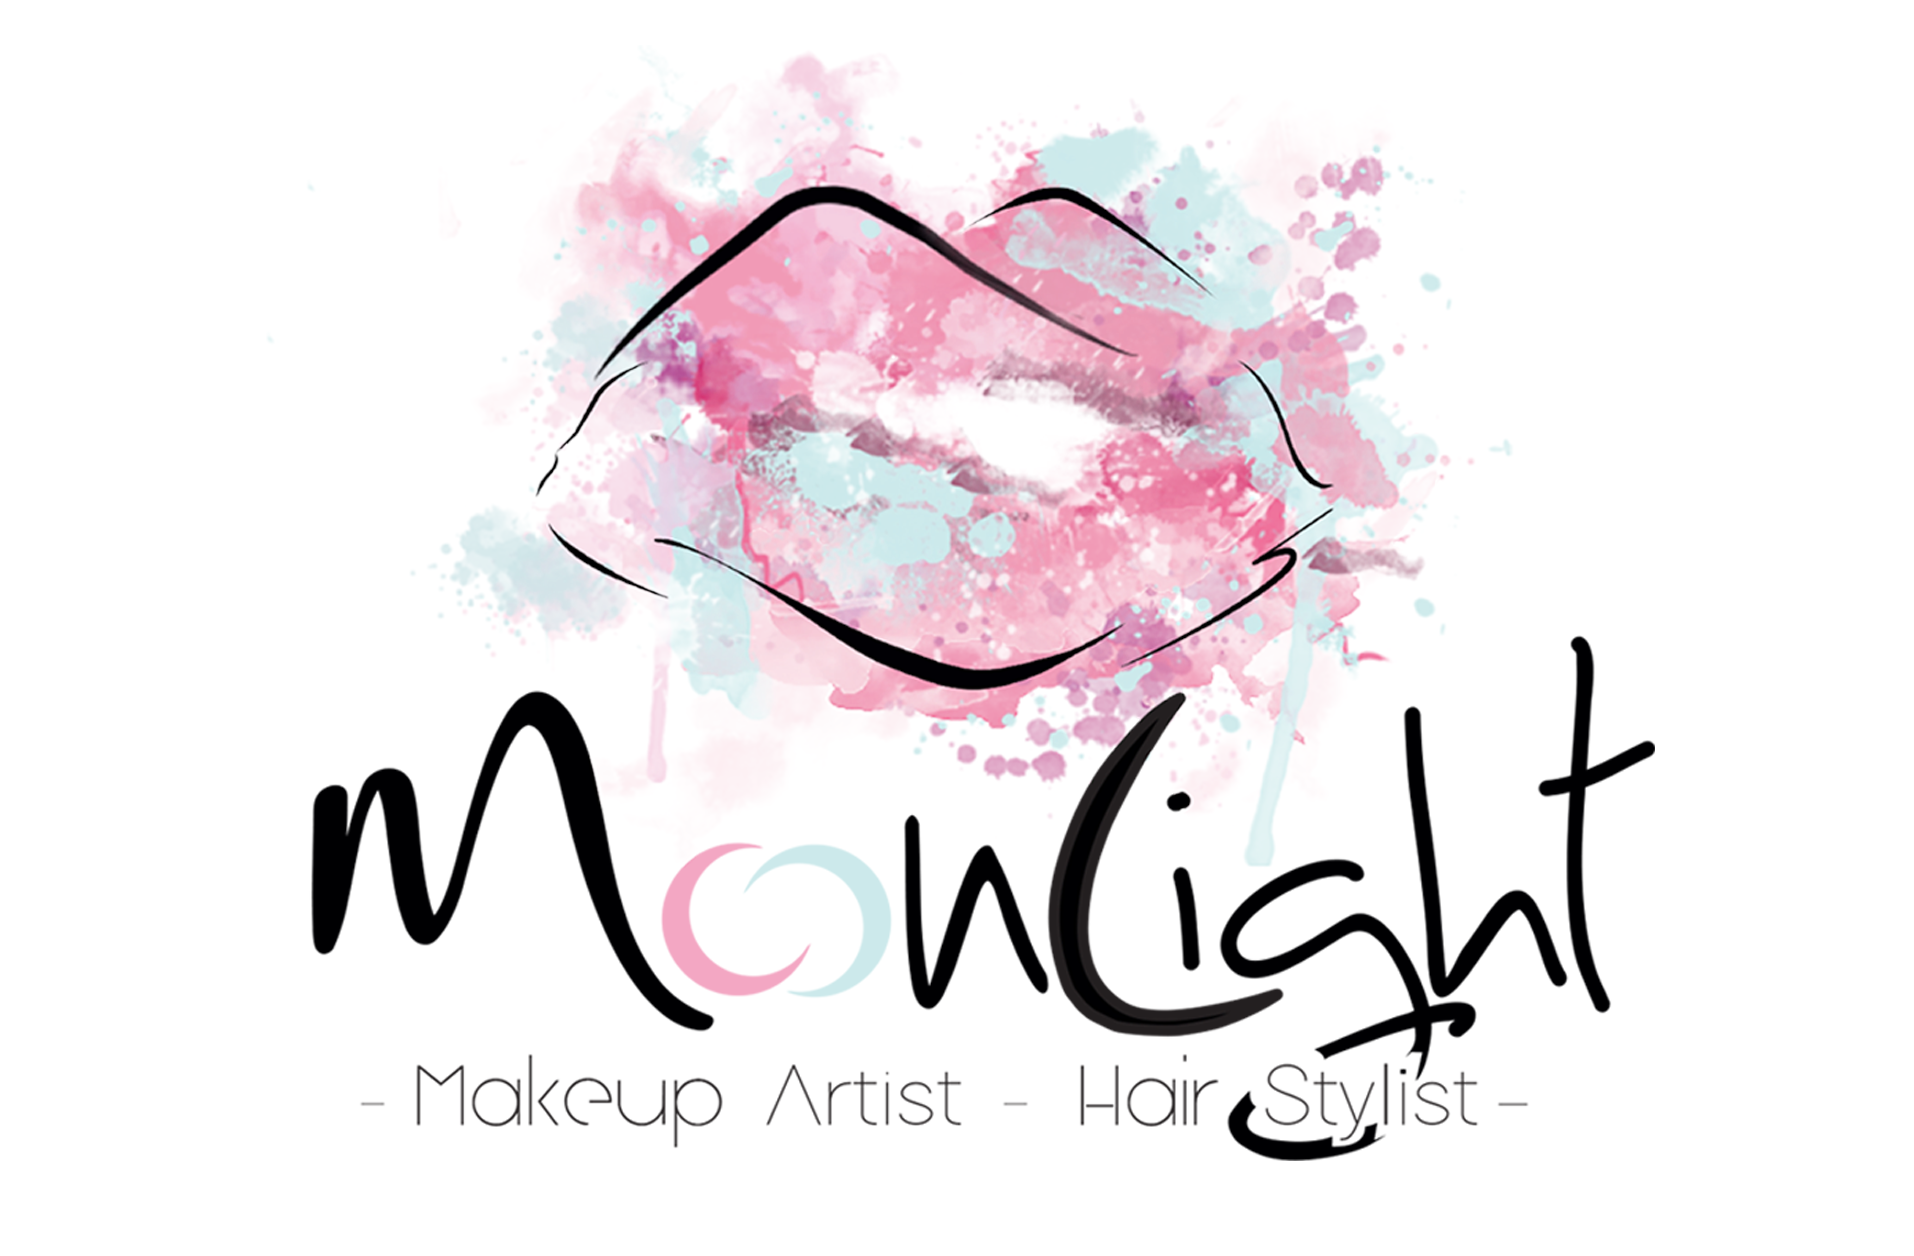 Moonlight Makeup Artist logo